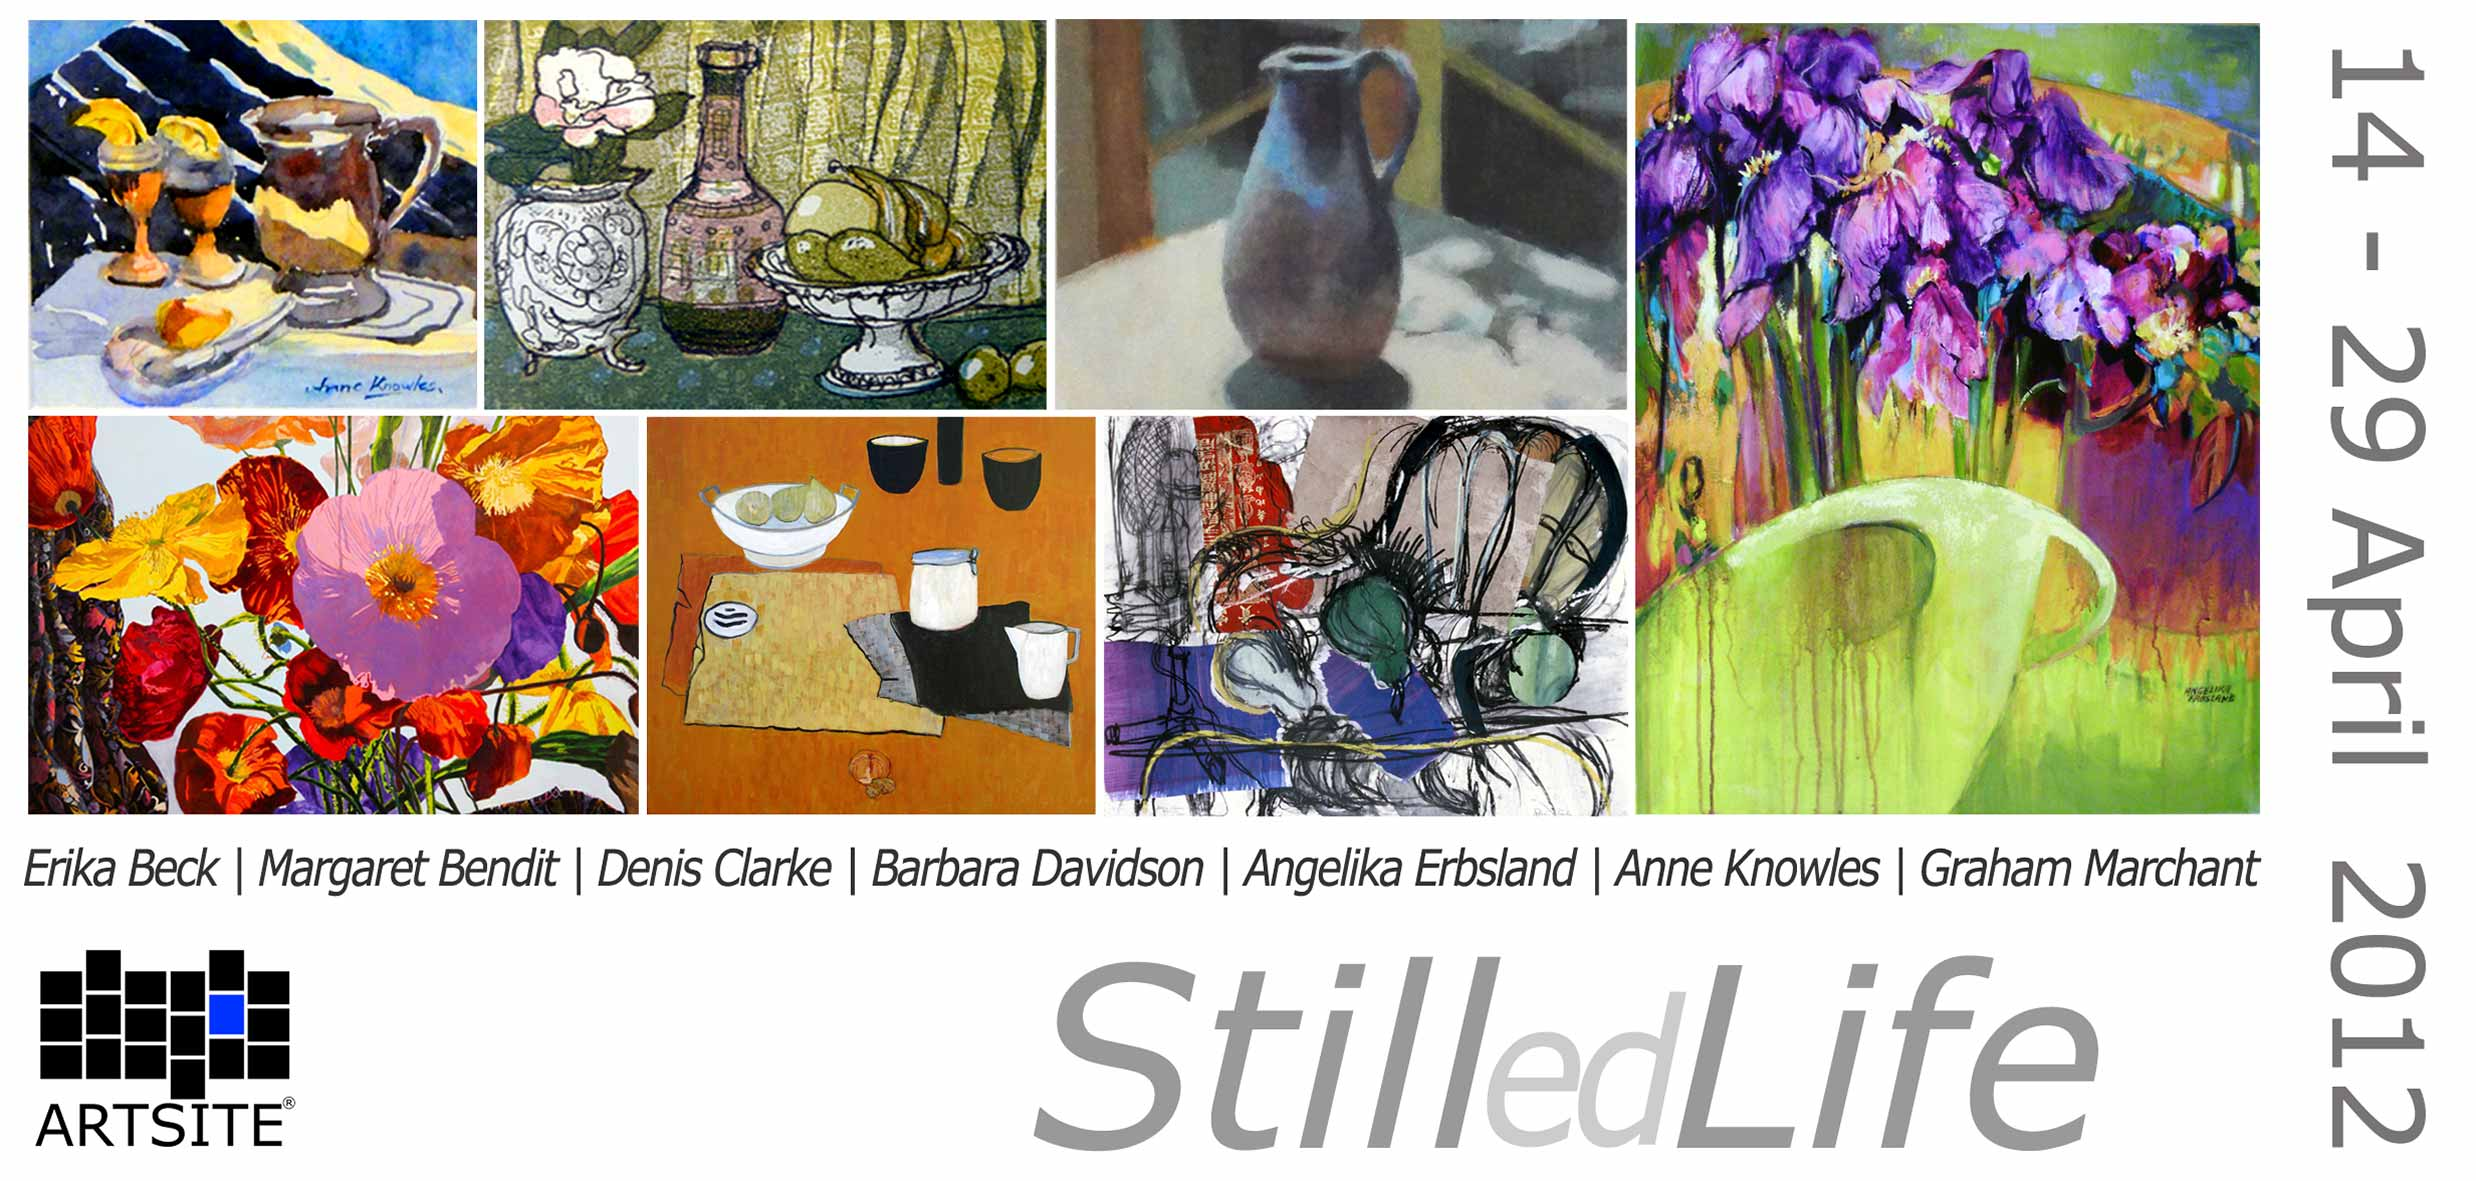 View Exhibition at Artsite Gallery. 14 - 29 April 2012: Stilled Life - An exhibition of Still life Paintings and Works on Paper.